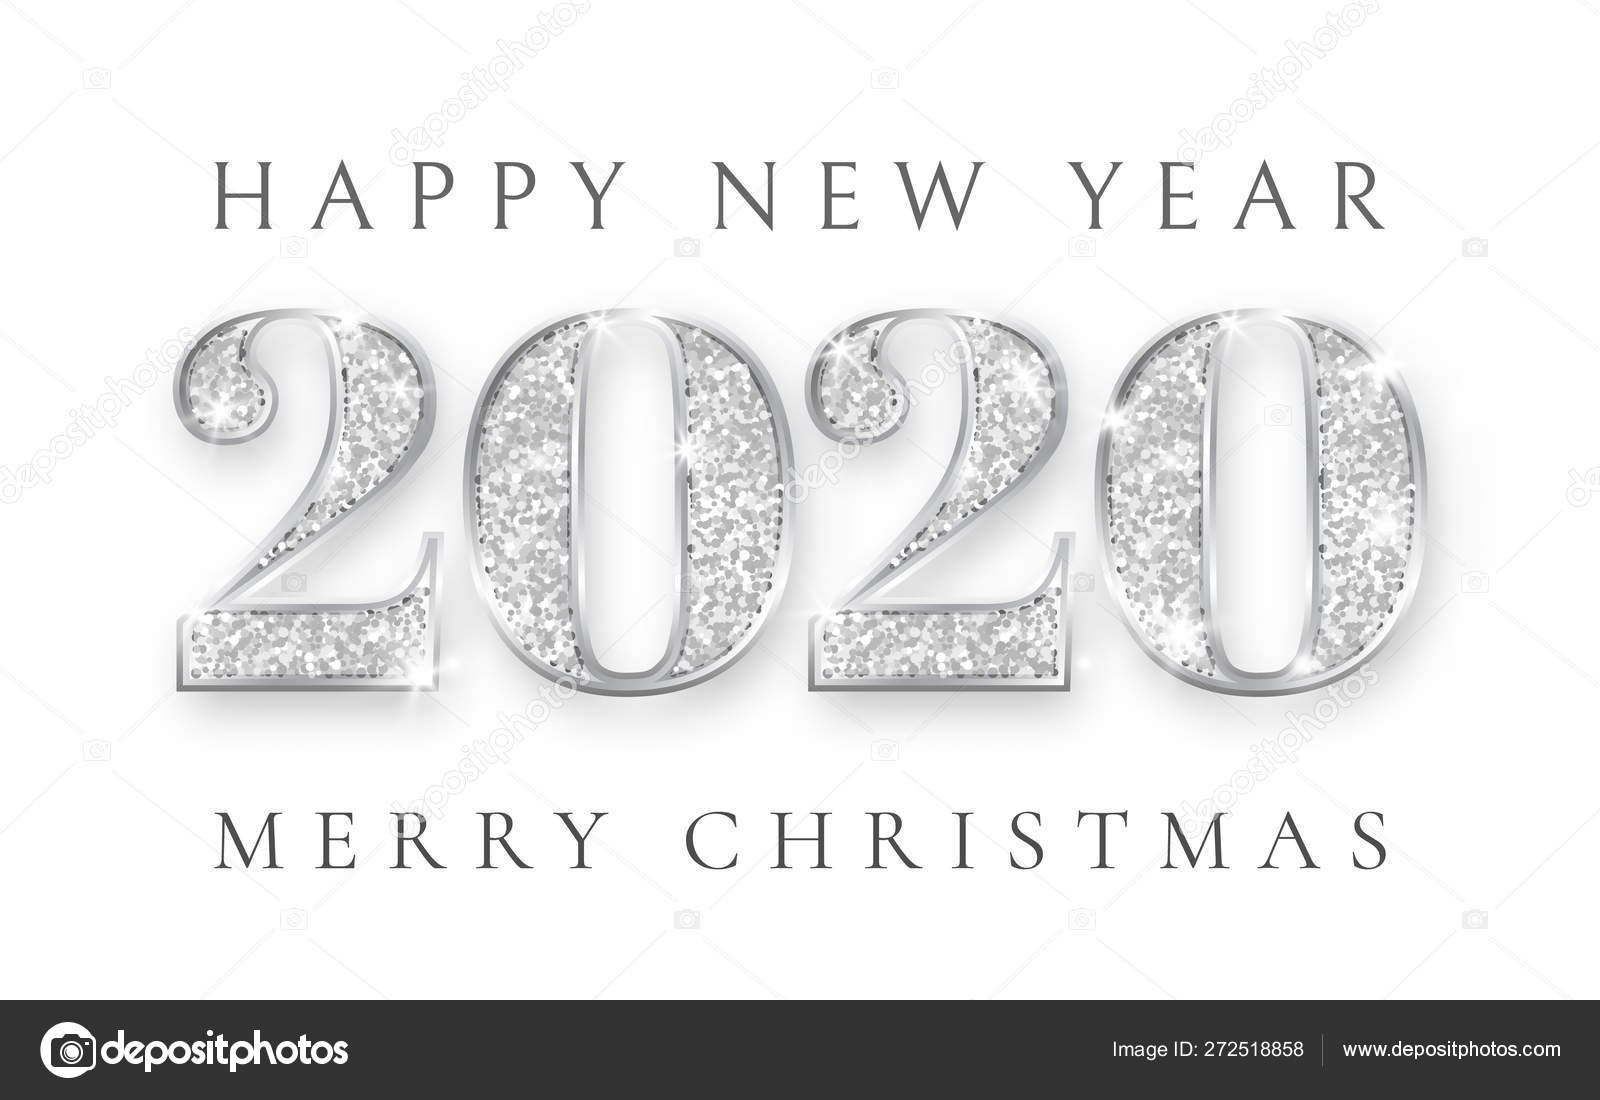 Christmas 2020 Silver Happy New Year and Marry Christmas 2020, silver numbers design of